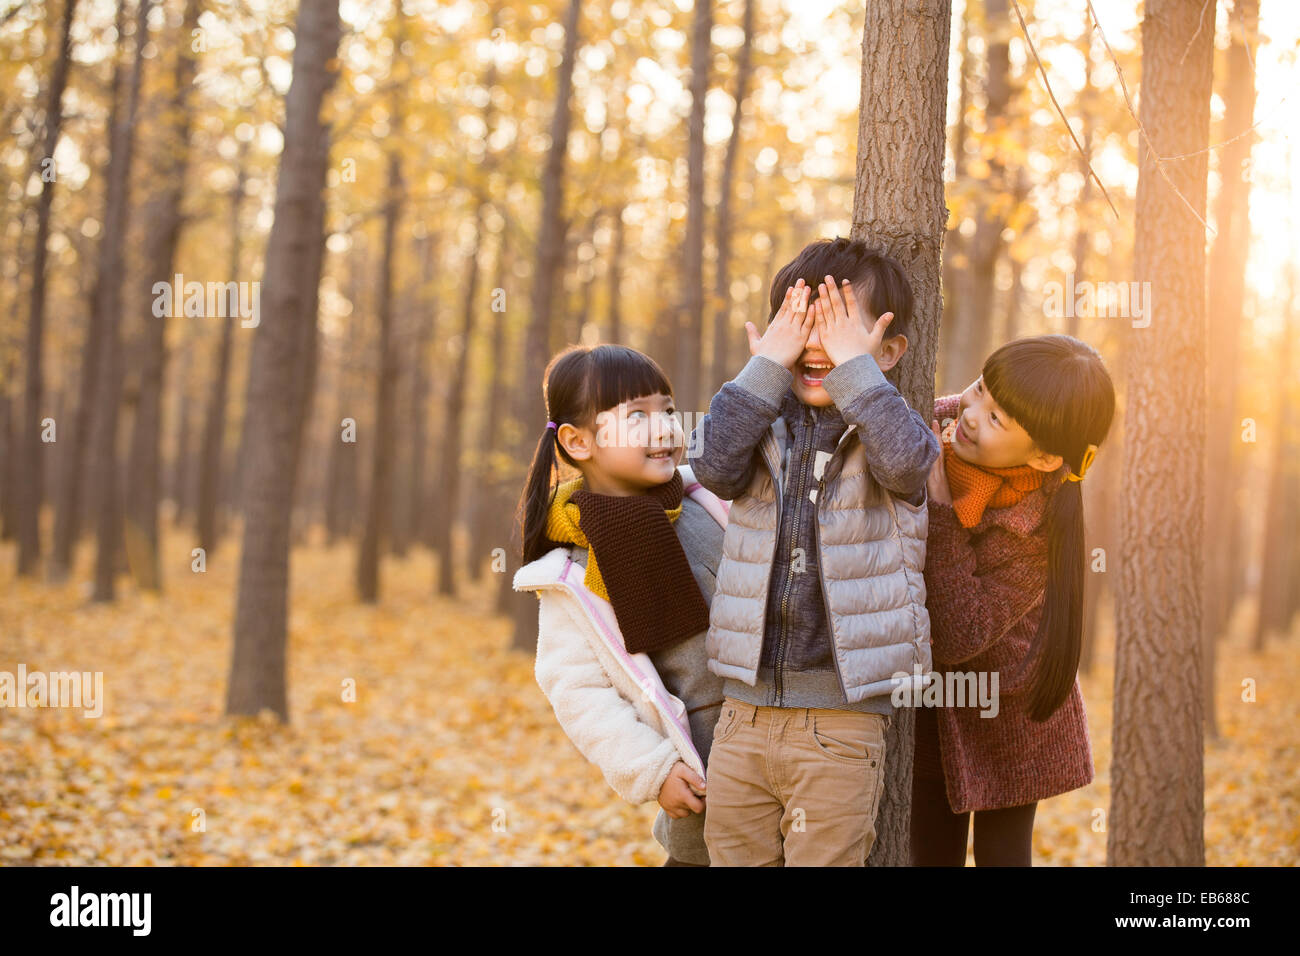 Three children playing hide and seek in autumn woods - Stock Image